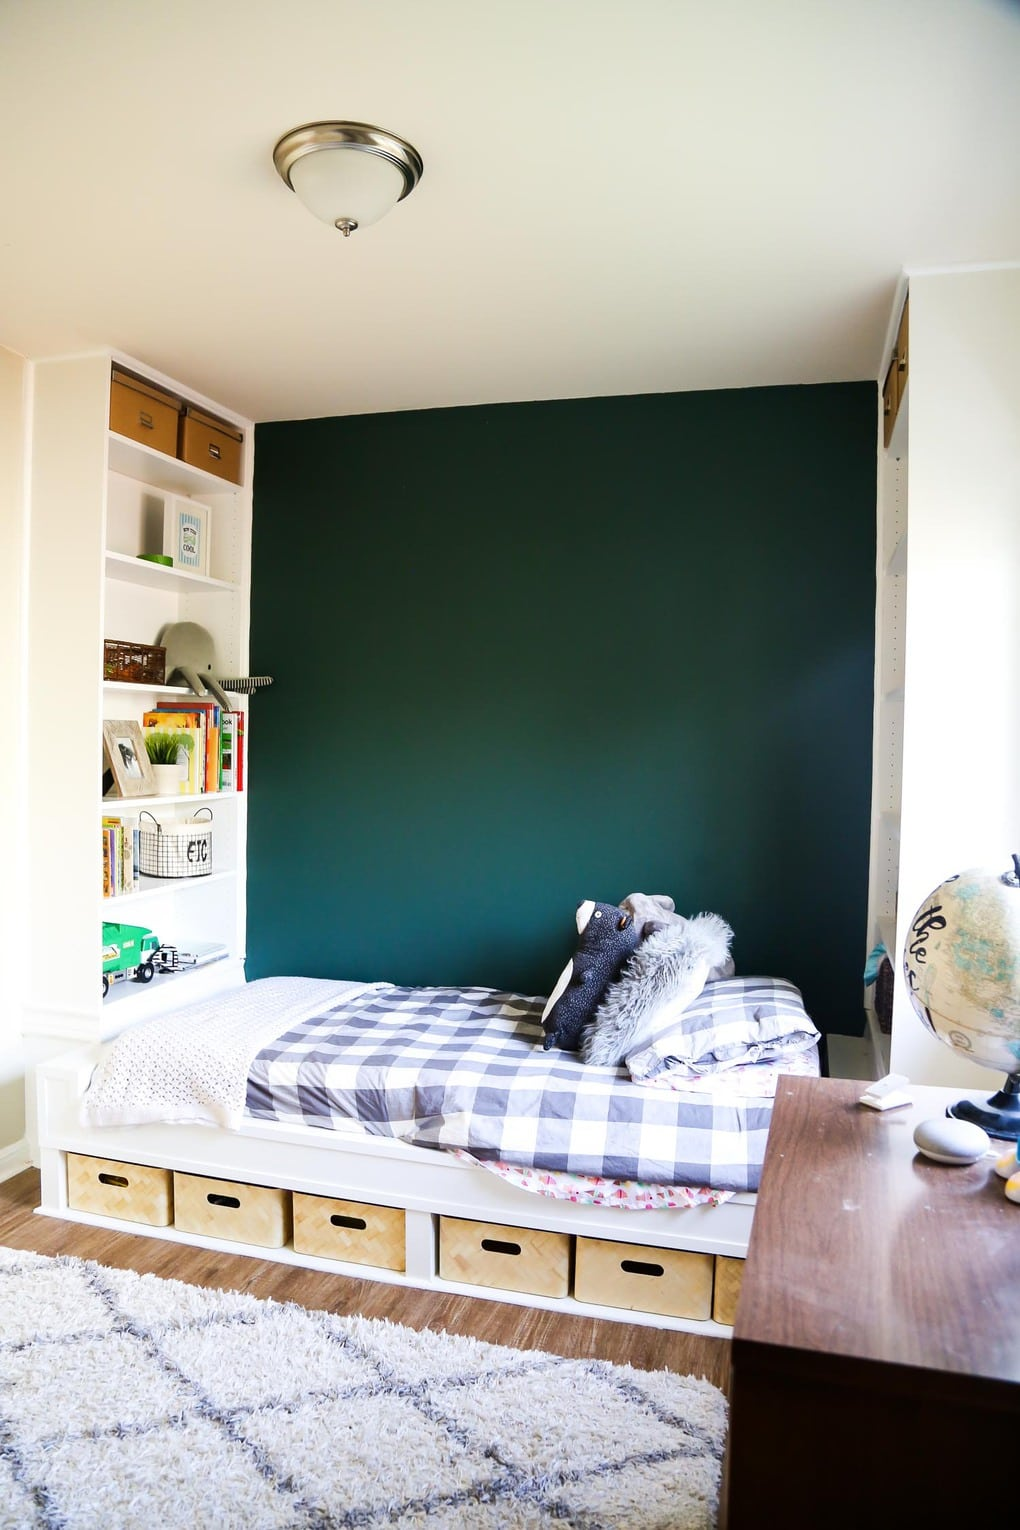 Build in shelves with a bed that has grey bedding and a green accent wall